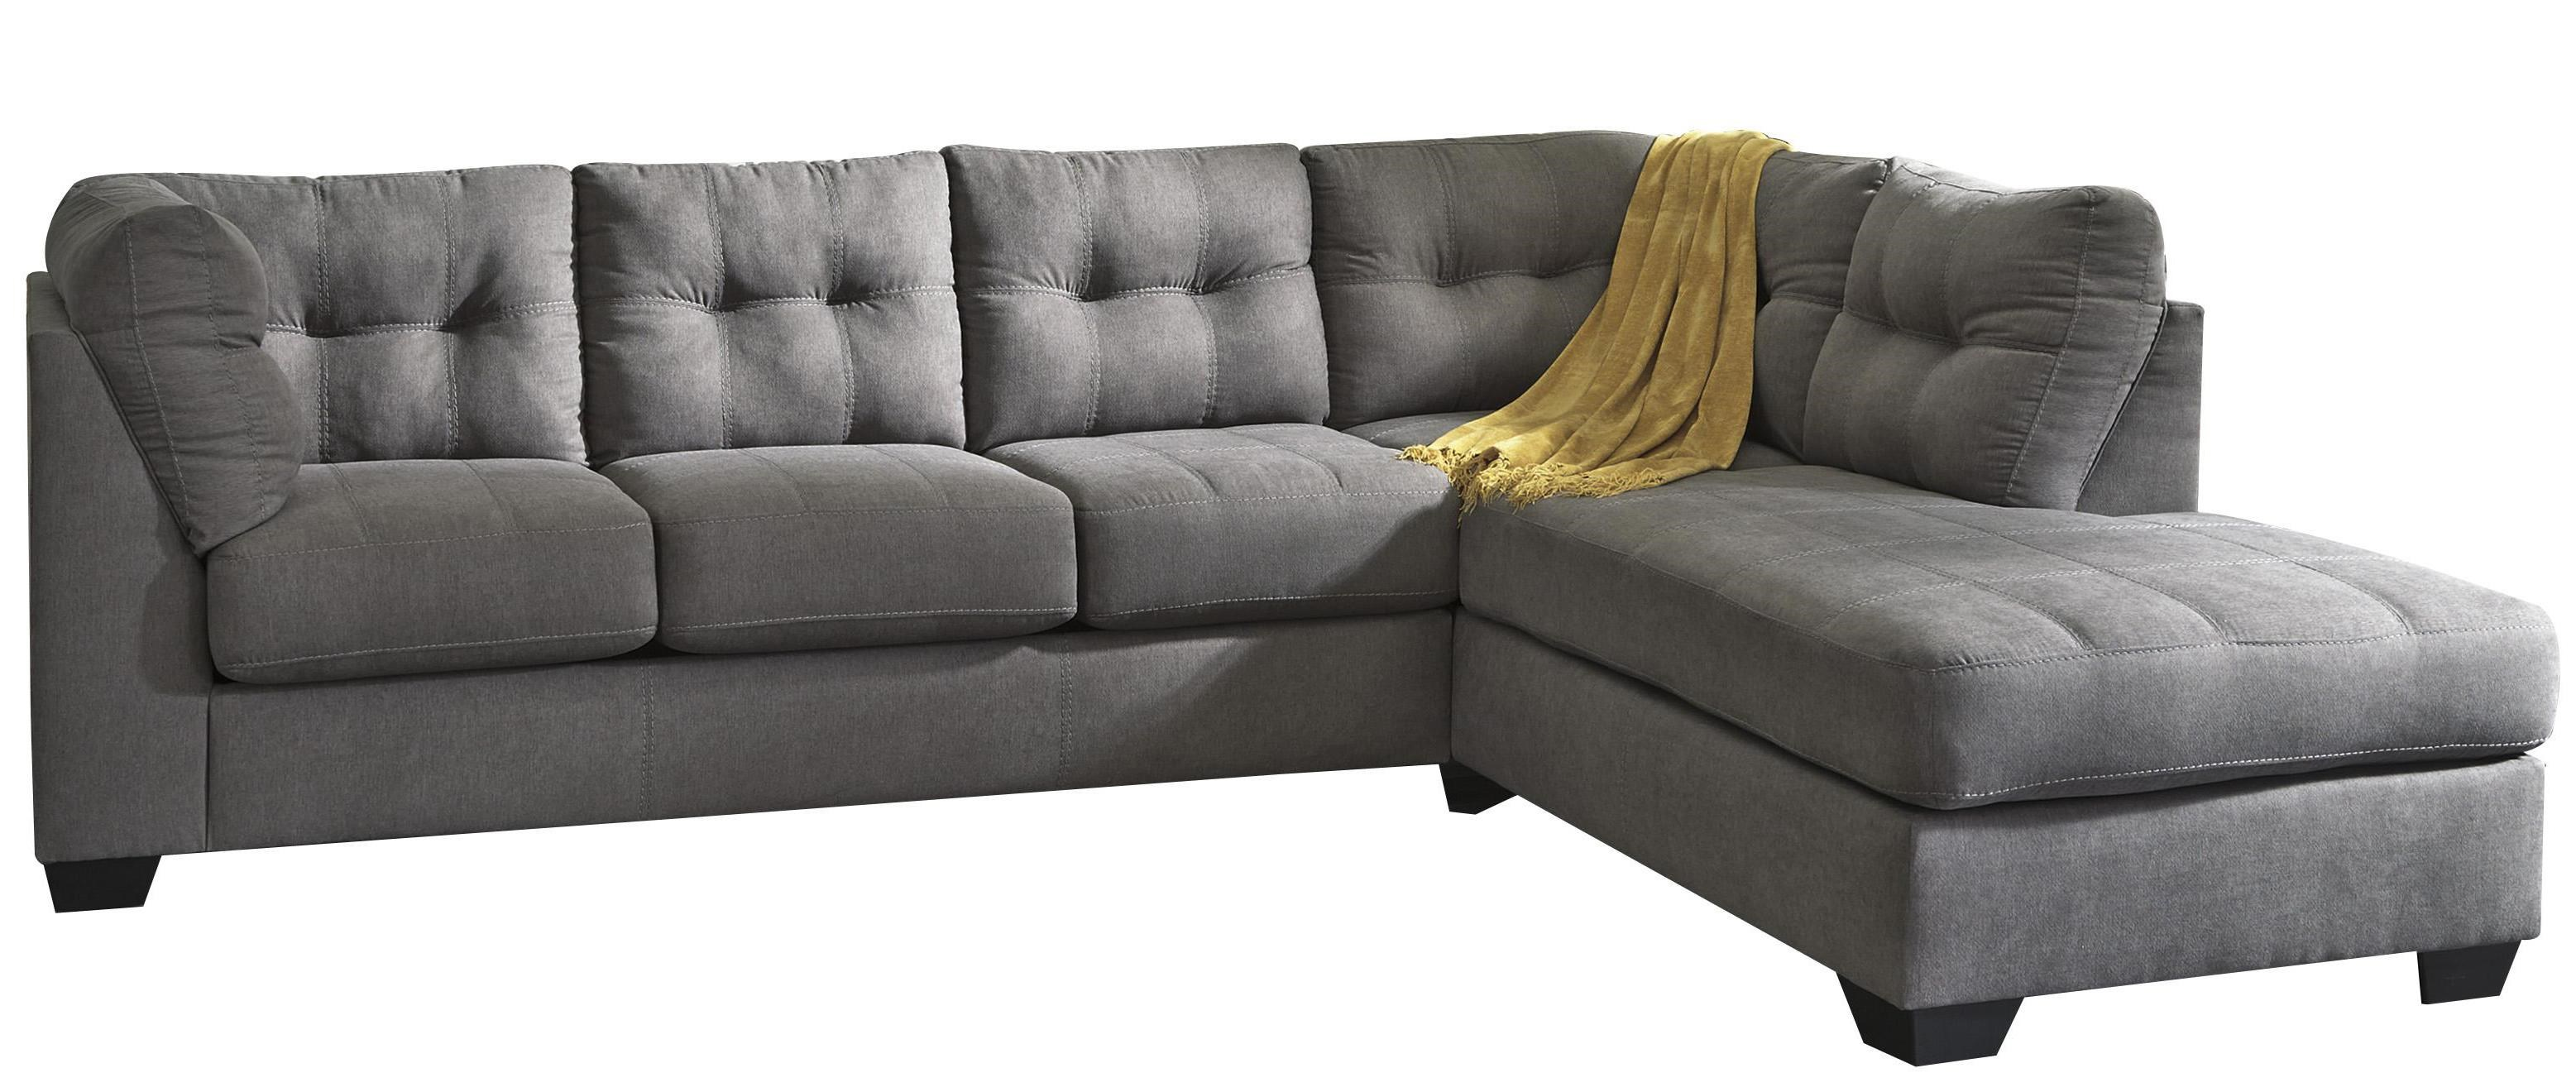 Sectional Bed Sofa Malcolm Charcoal 2 Piece Sectional With Right Chaise By Trendz At Ruby Gordon Home